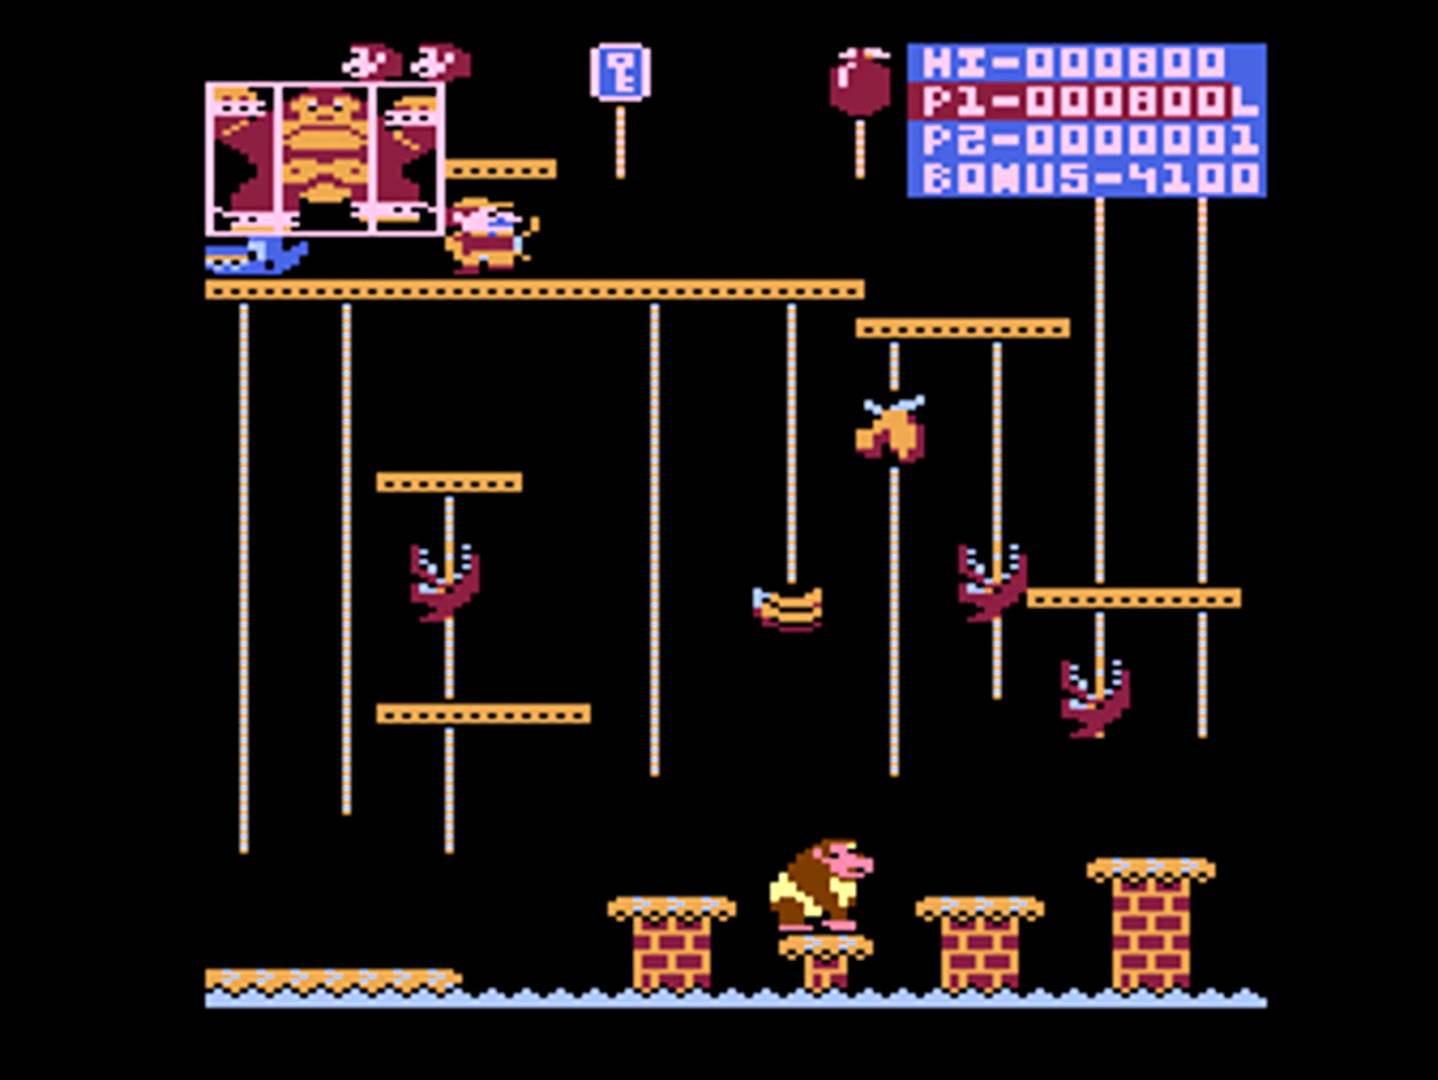 Donkey Kong Jr. on Atari 400